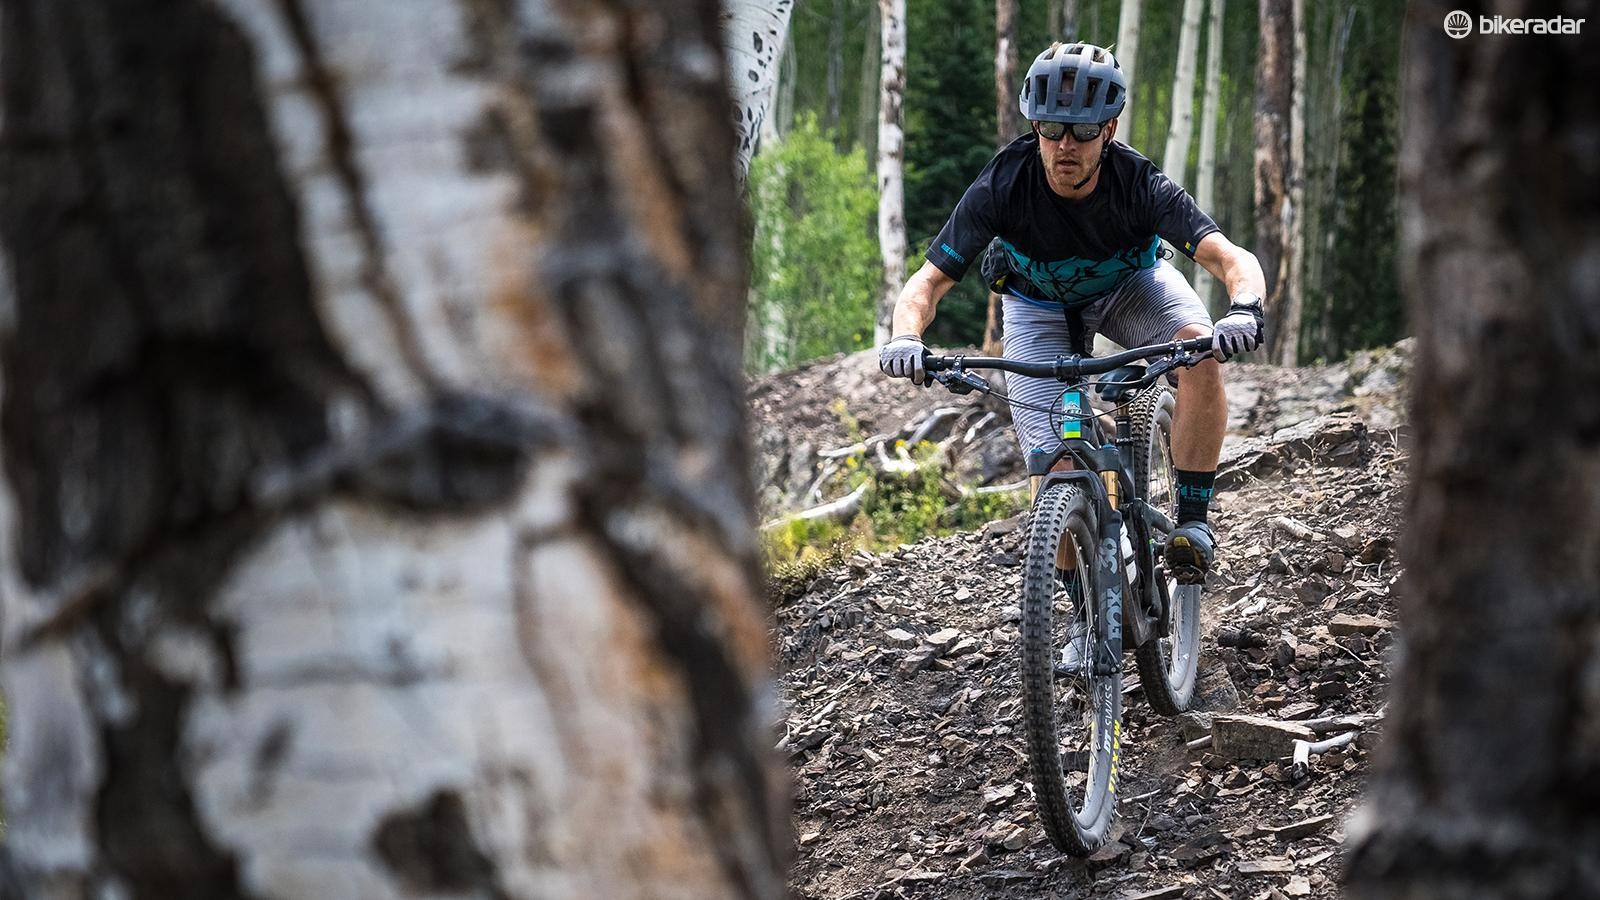 The SB130 is hard to pigeonhole – it's as at home on all day epics as it is in the bike park